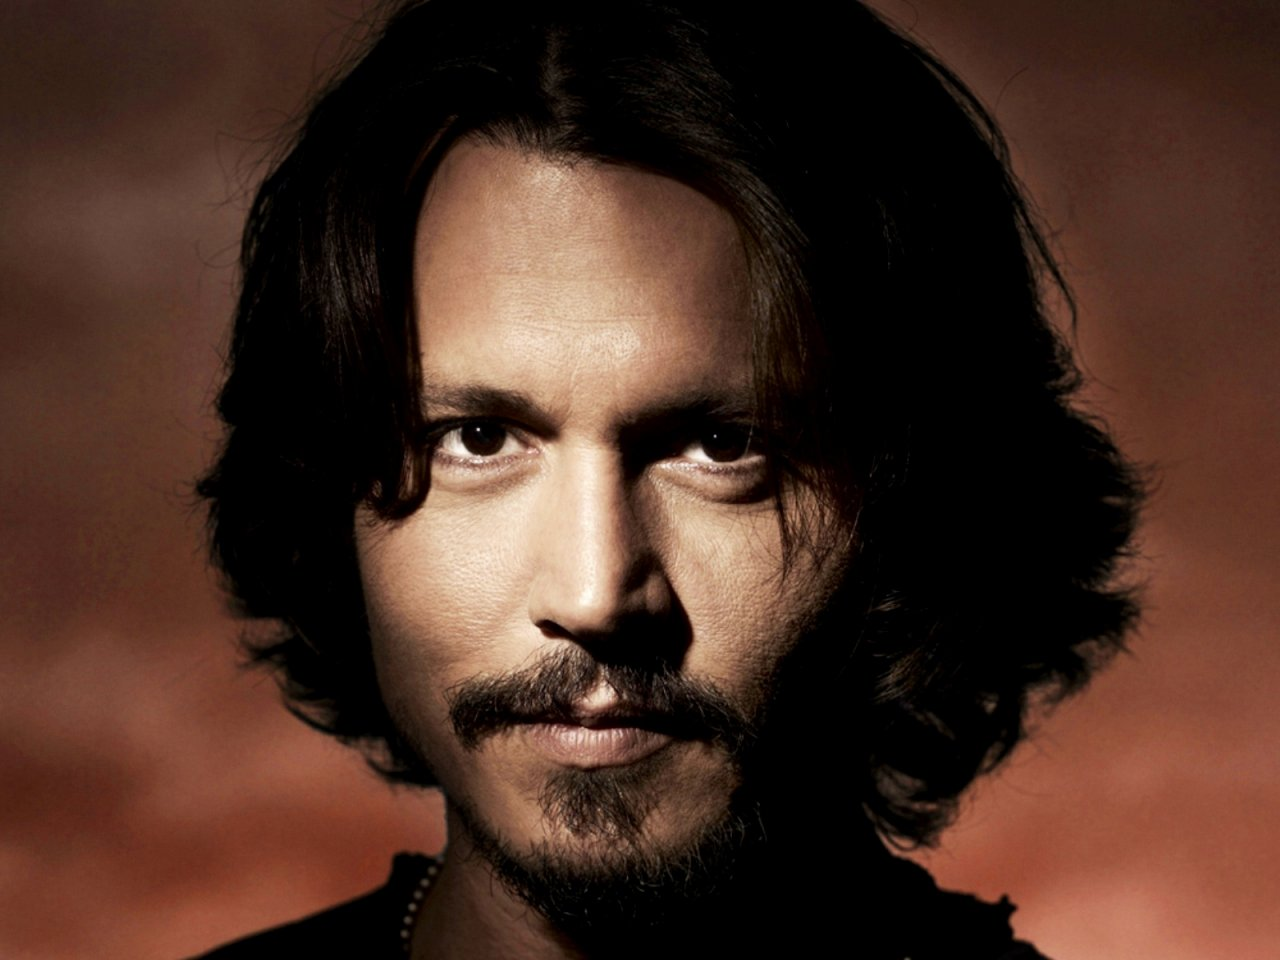 johnny depp wallpaper 1722